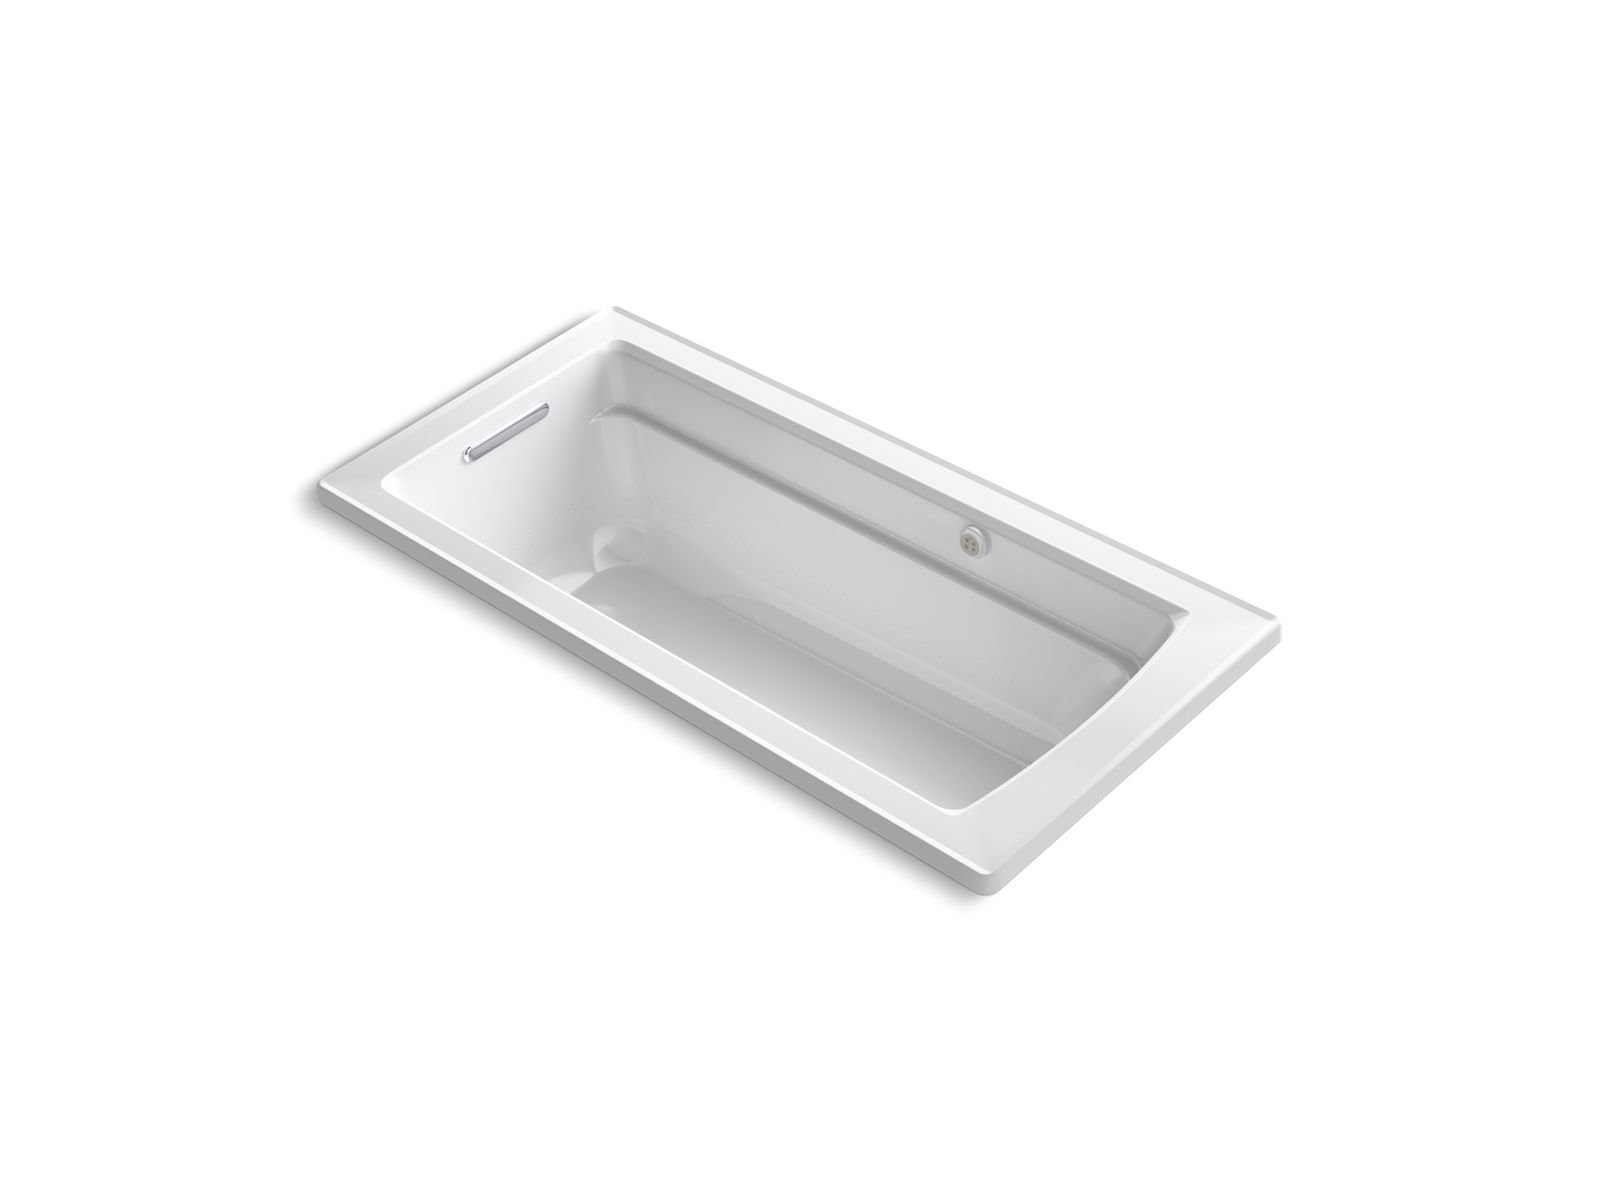 Kohler K-1949-G-0 Archer 66 x 32 Drop-in Bubblemassage Air Bath with Reversible Drain in White